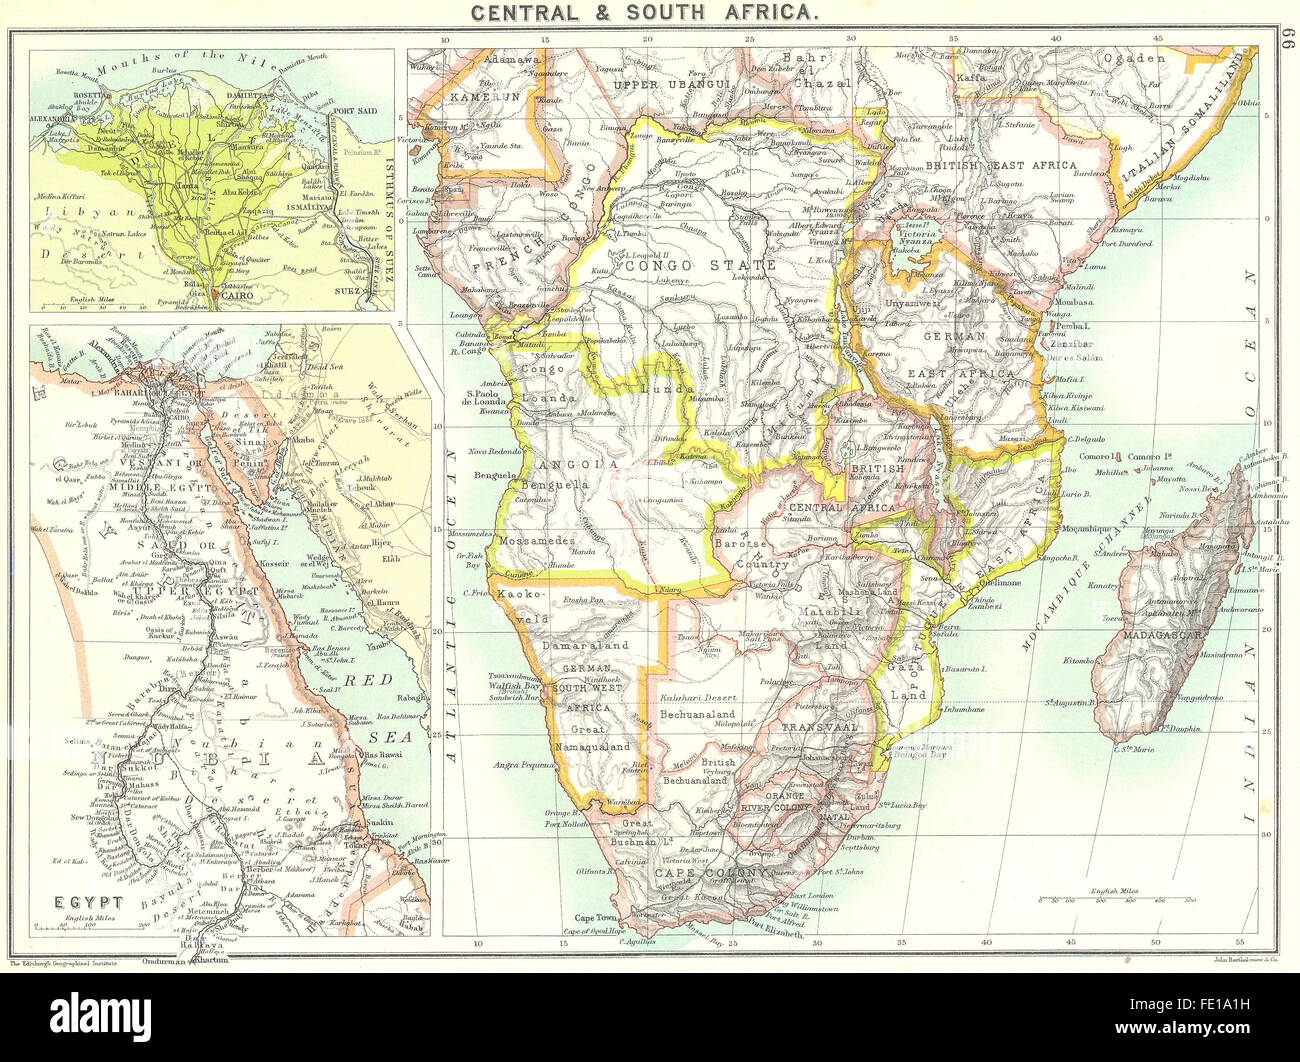 SOUTH AFRICA: Central &; Cairo; Egypt, 1900 antique map Stock Photo ...